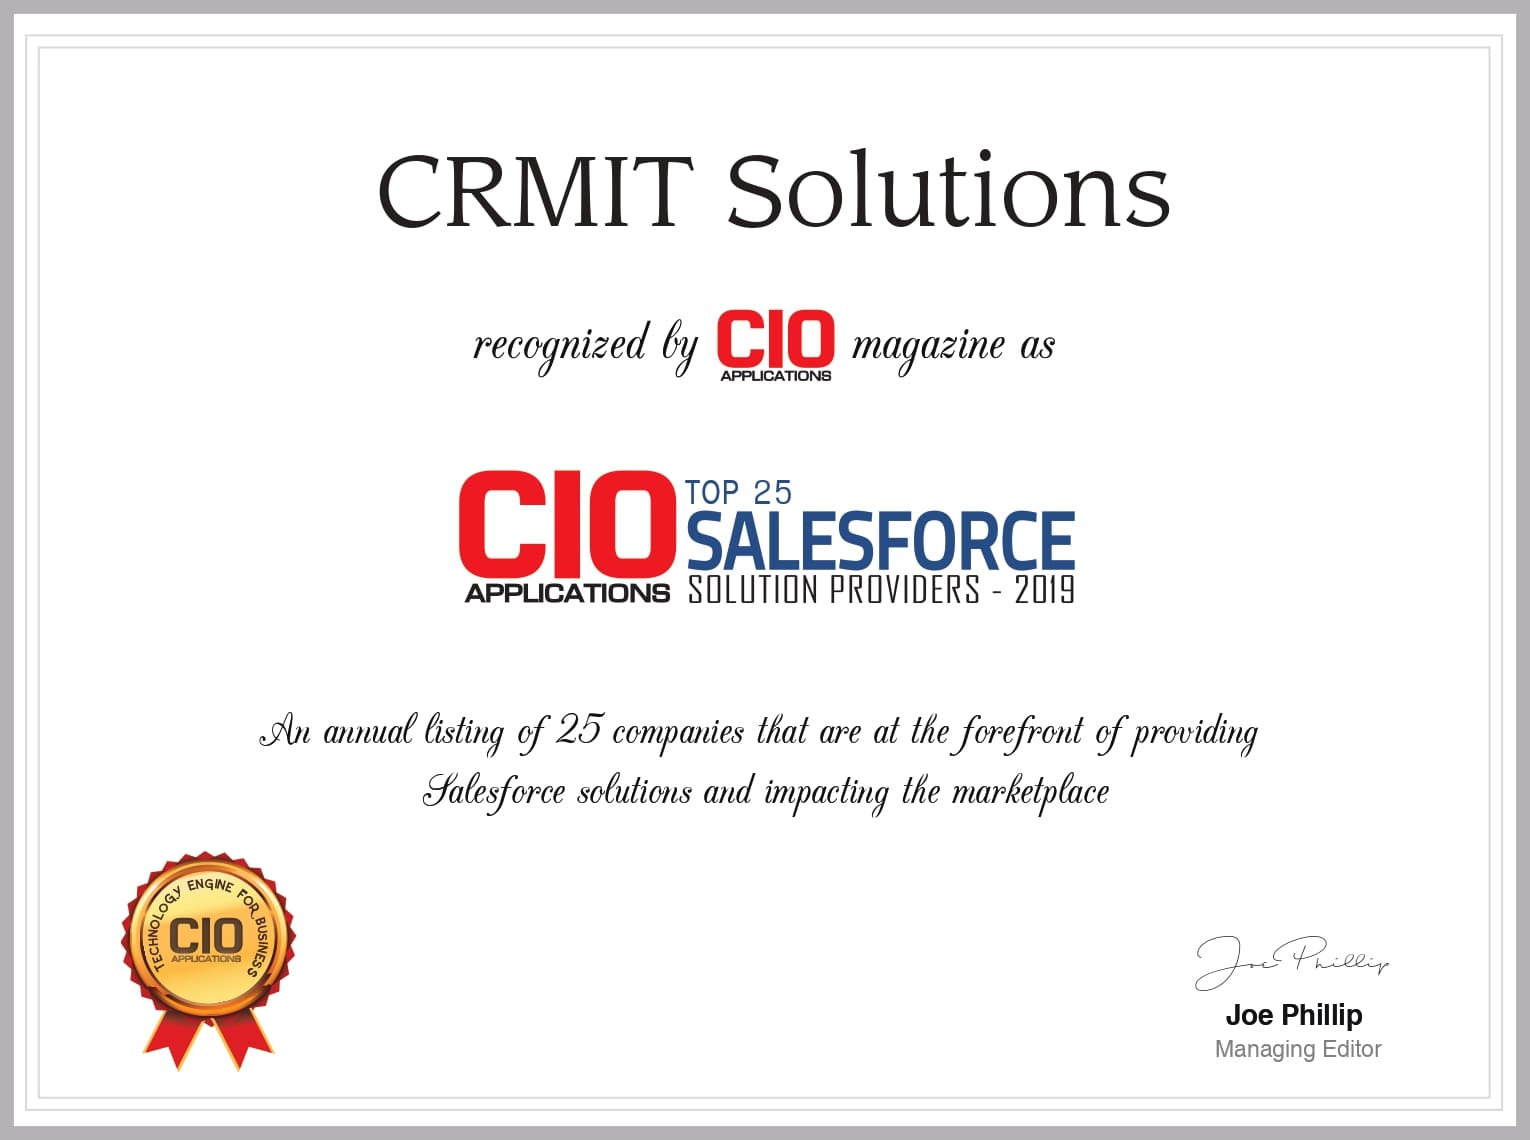 CIOApplication list of Top 25 Salesforce Solution